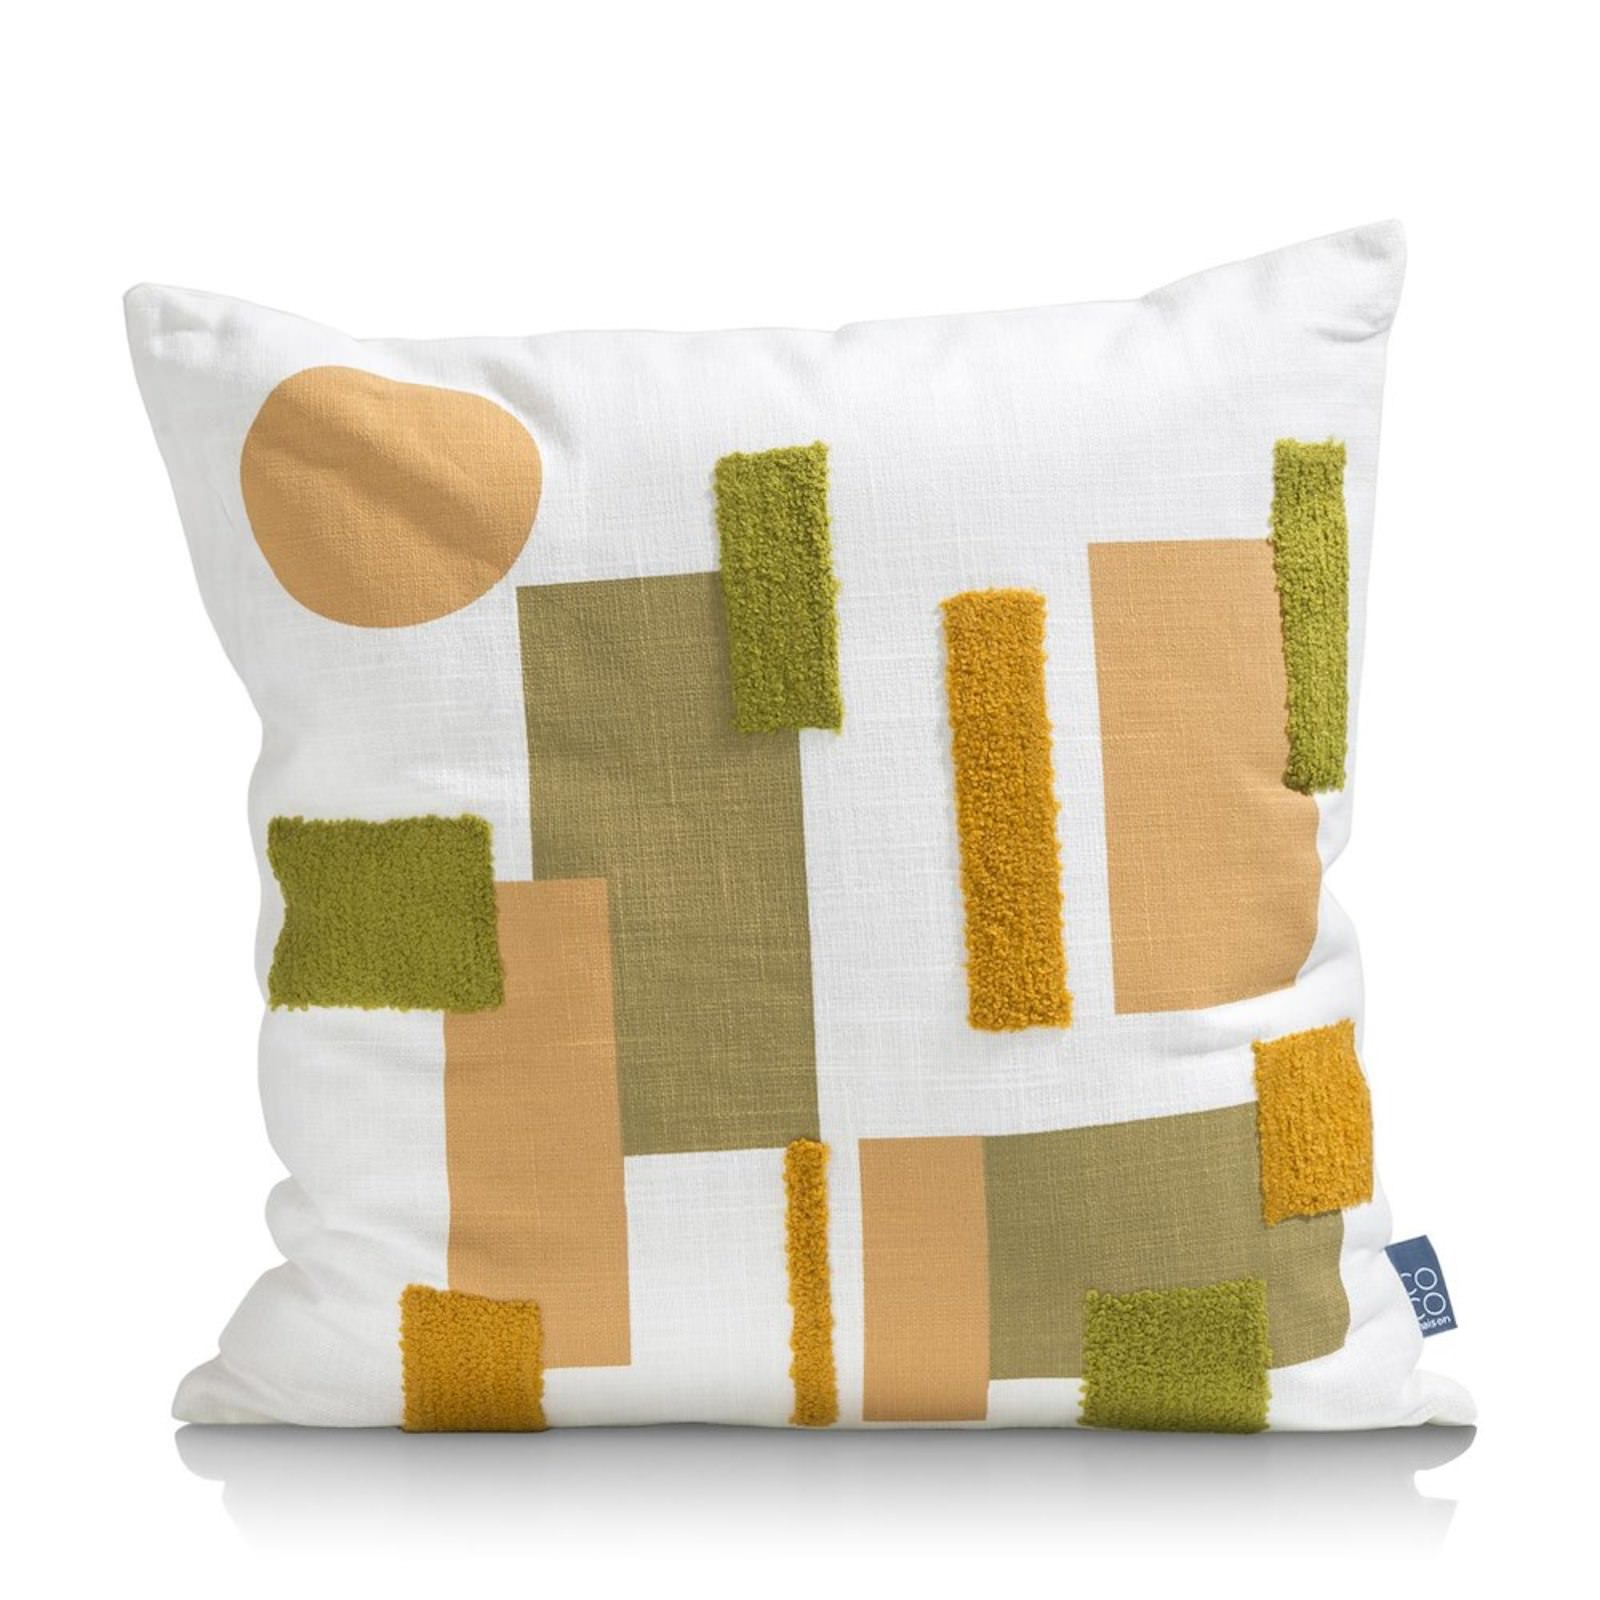 ADELAIDE COUSSIN 45X45CM